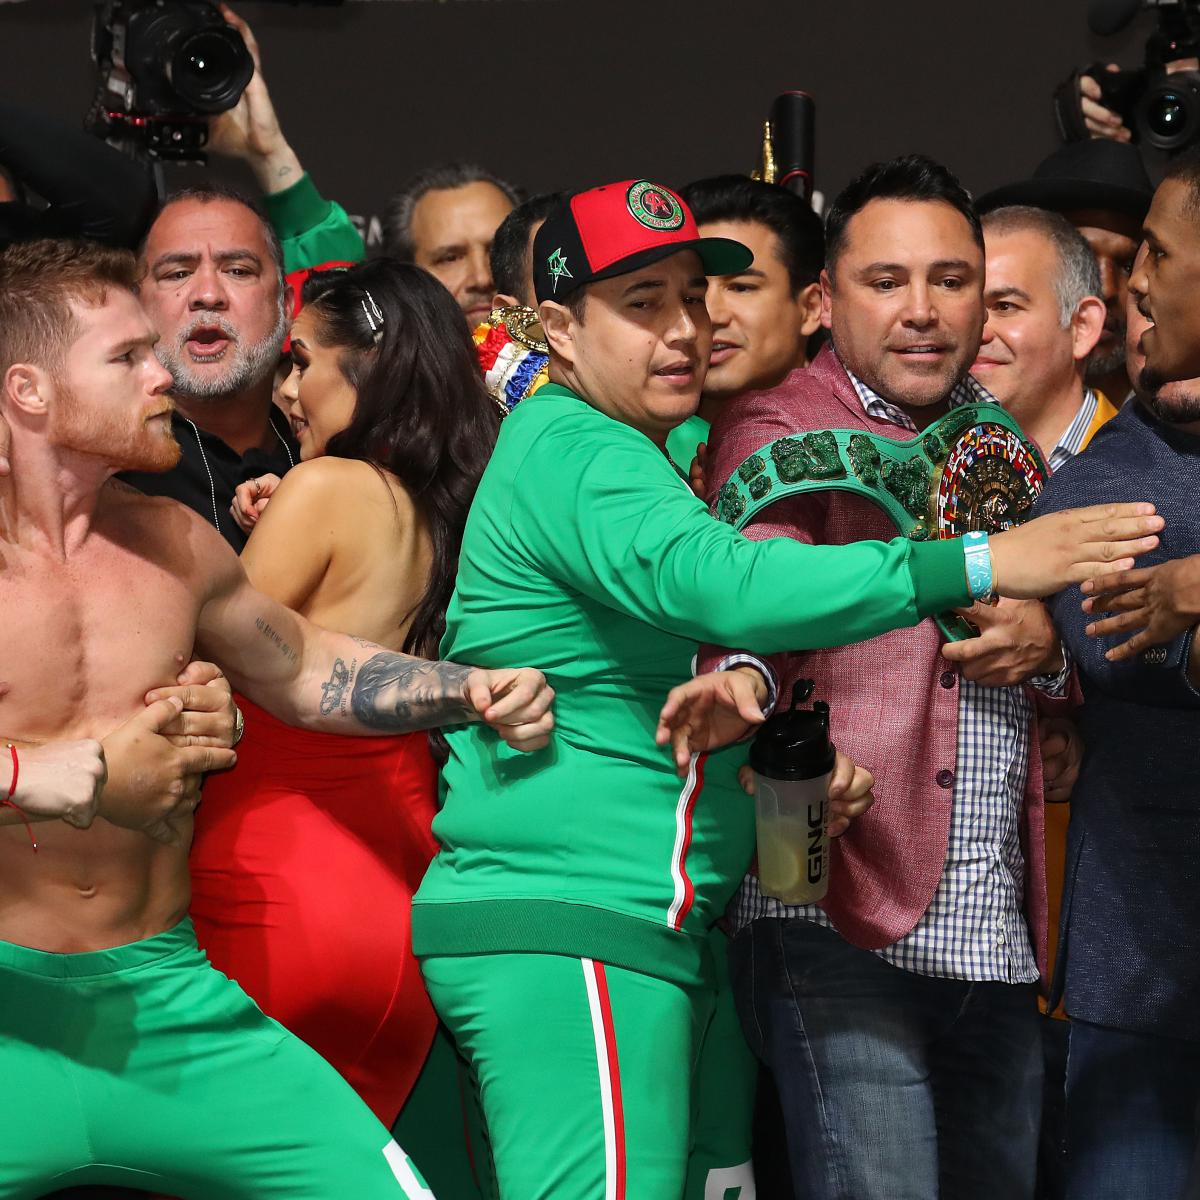 Video: Watch Canelo Alvarez And Daniel Jacobs Scuffle At